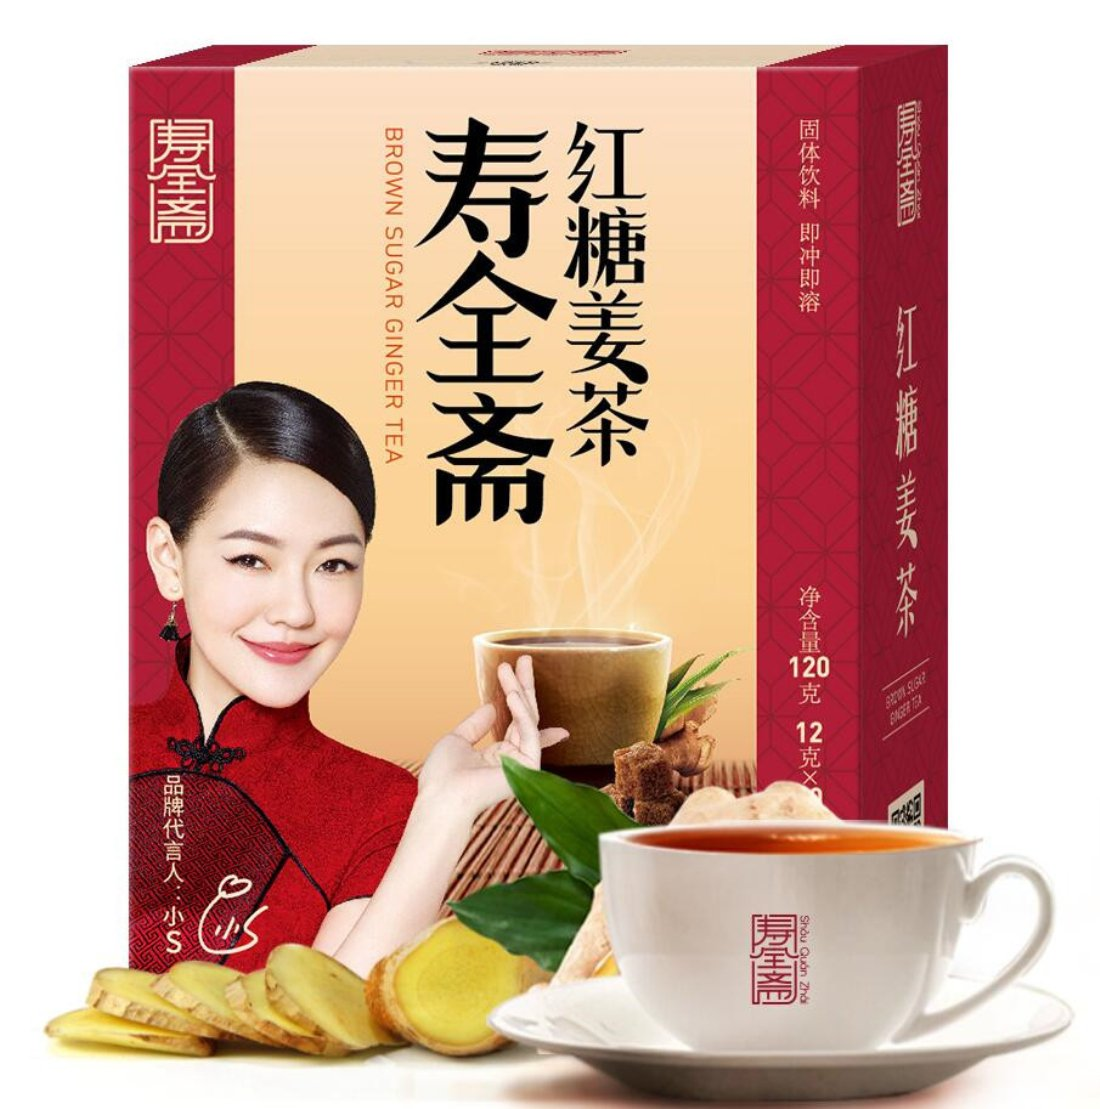 Helen Ou@ Chinese Traditional Brown Sugar Ginger Tea Solid Beverage Convenient and Efficient 120g/4.2oz by ho tea